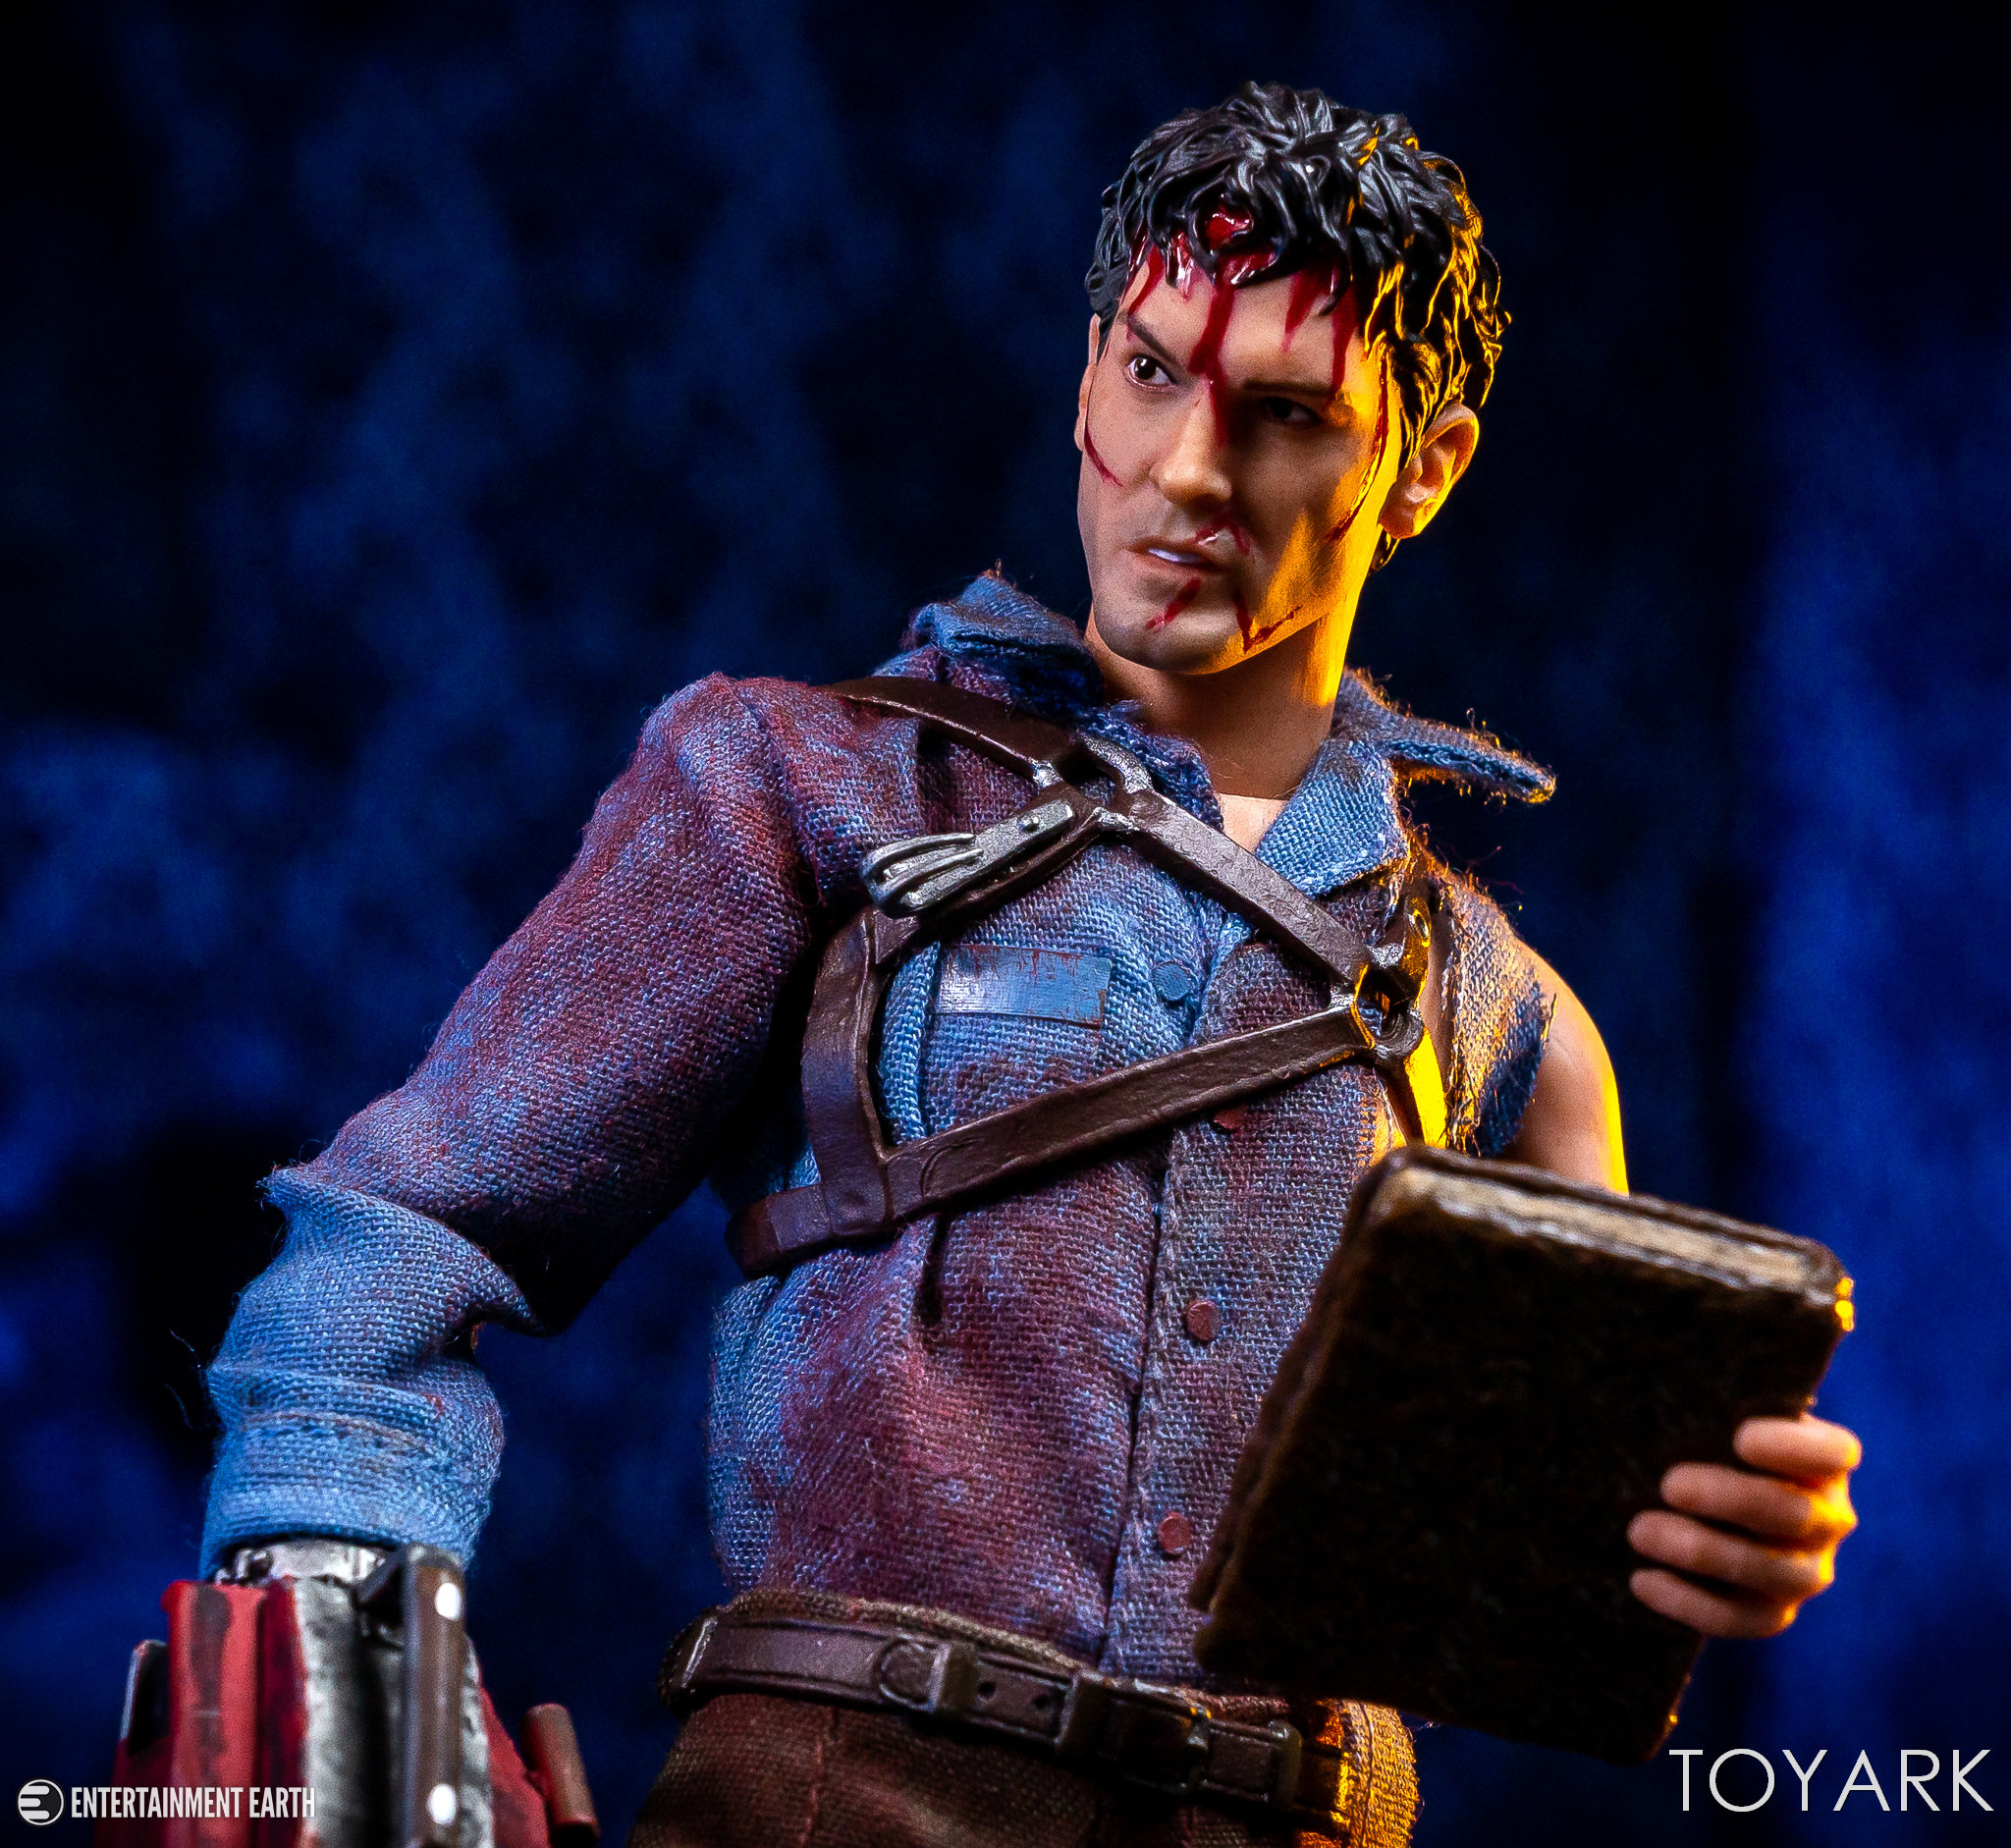 https://news.toyark.com/wp-content/uploads/sites/4/2019/01/Mezco-One12-Evil-Dead-2-Ash-025.jpg